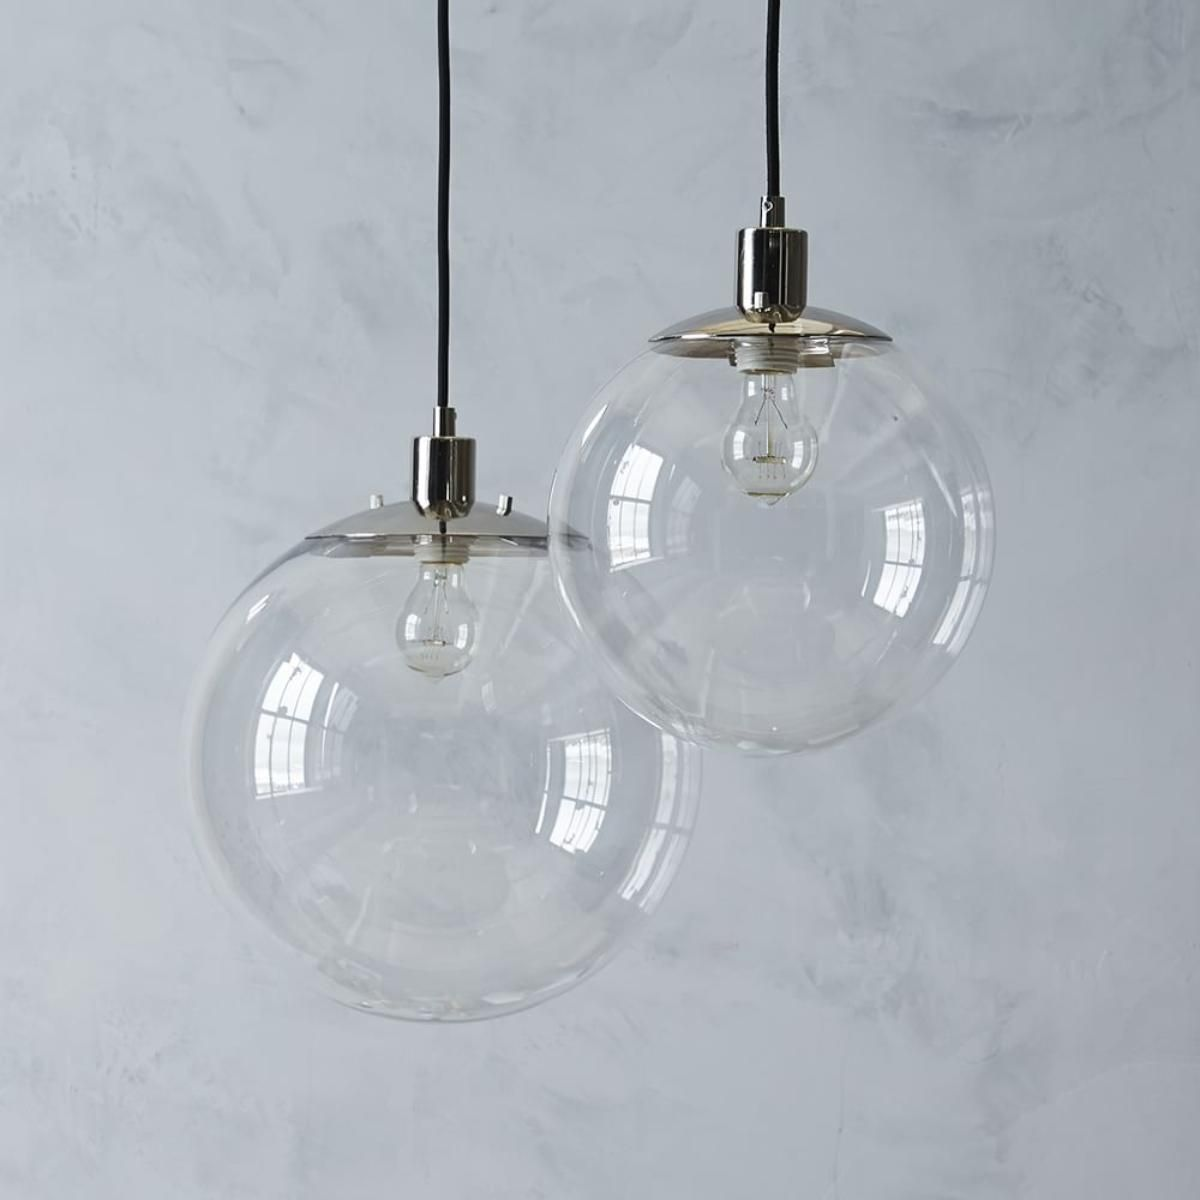 ceiling lighting kitchen contemporary pinterest lamps transparent. Globe Ceiling Lamp - Clear Lighting Kitchen Contemporary Pinterest Lamps Transparent G